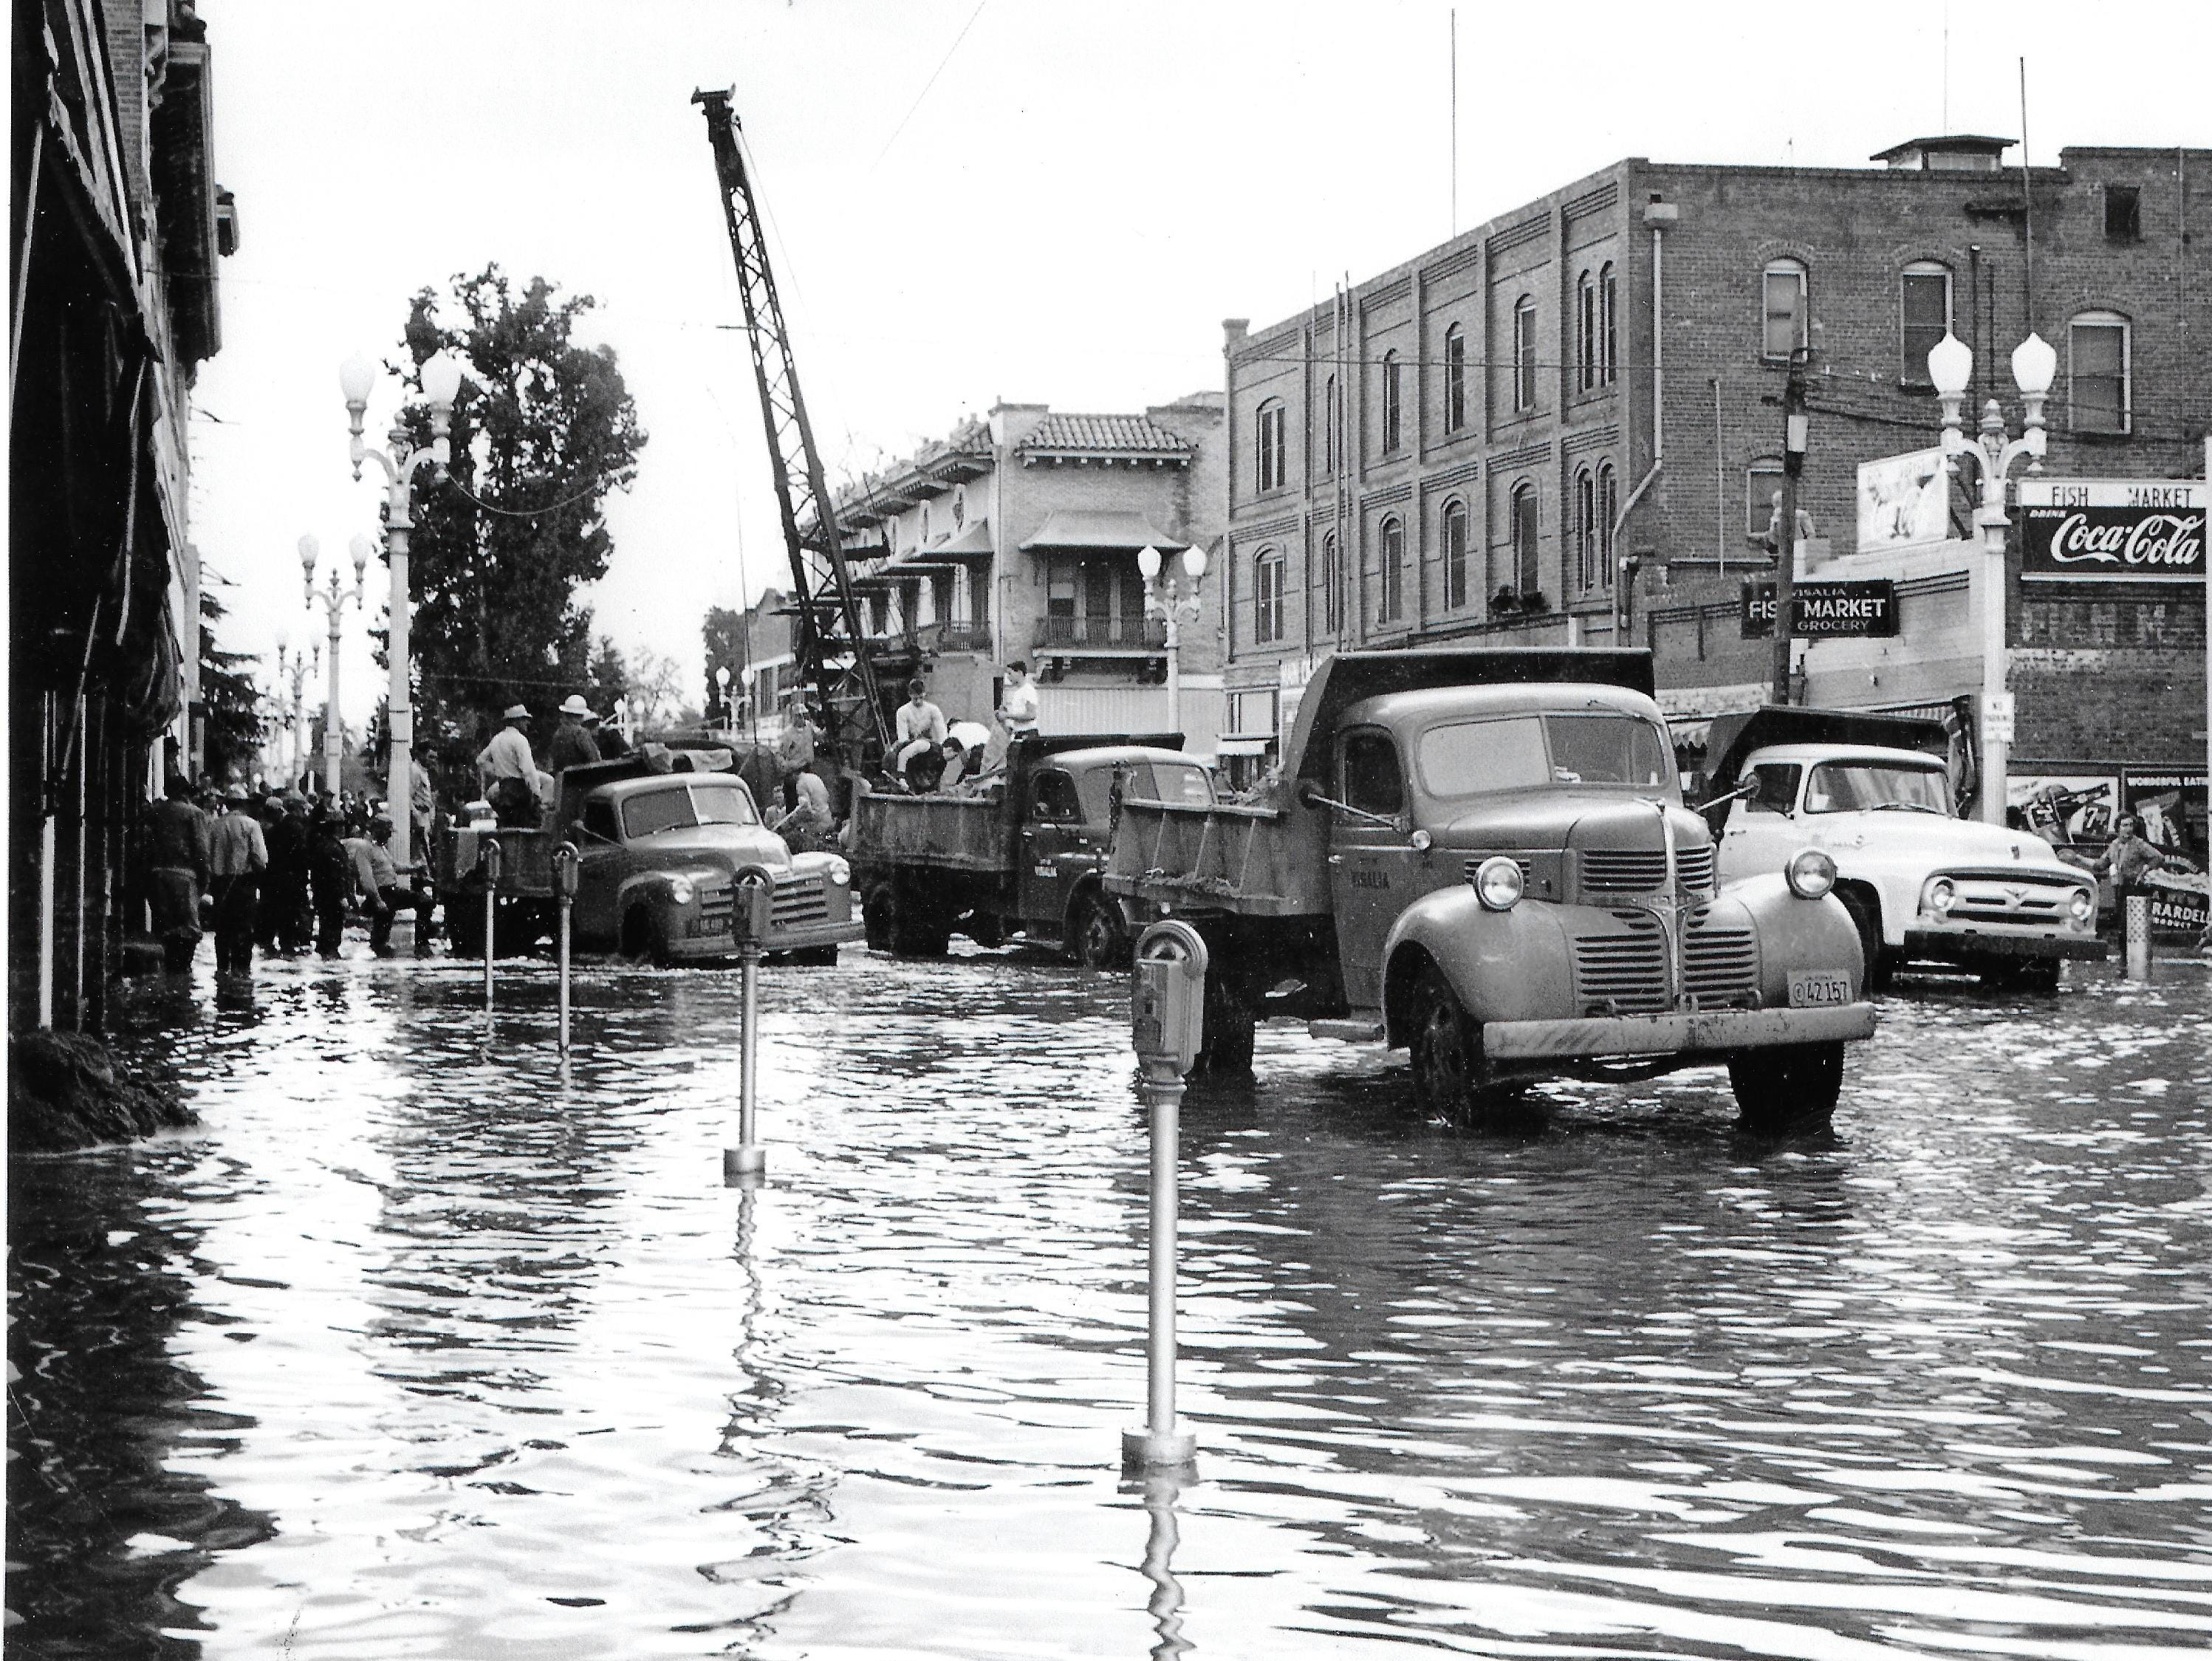 A photo shows the flood scene near Garden and Main Streets after the city was hit with floodwaters in December 1955 and again in January 1956.